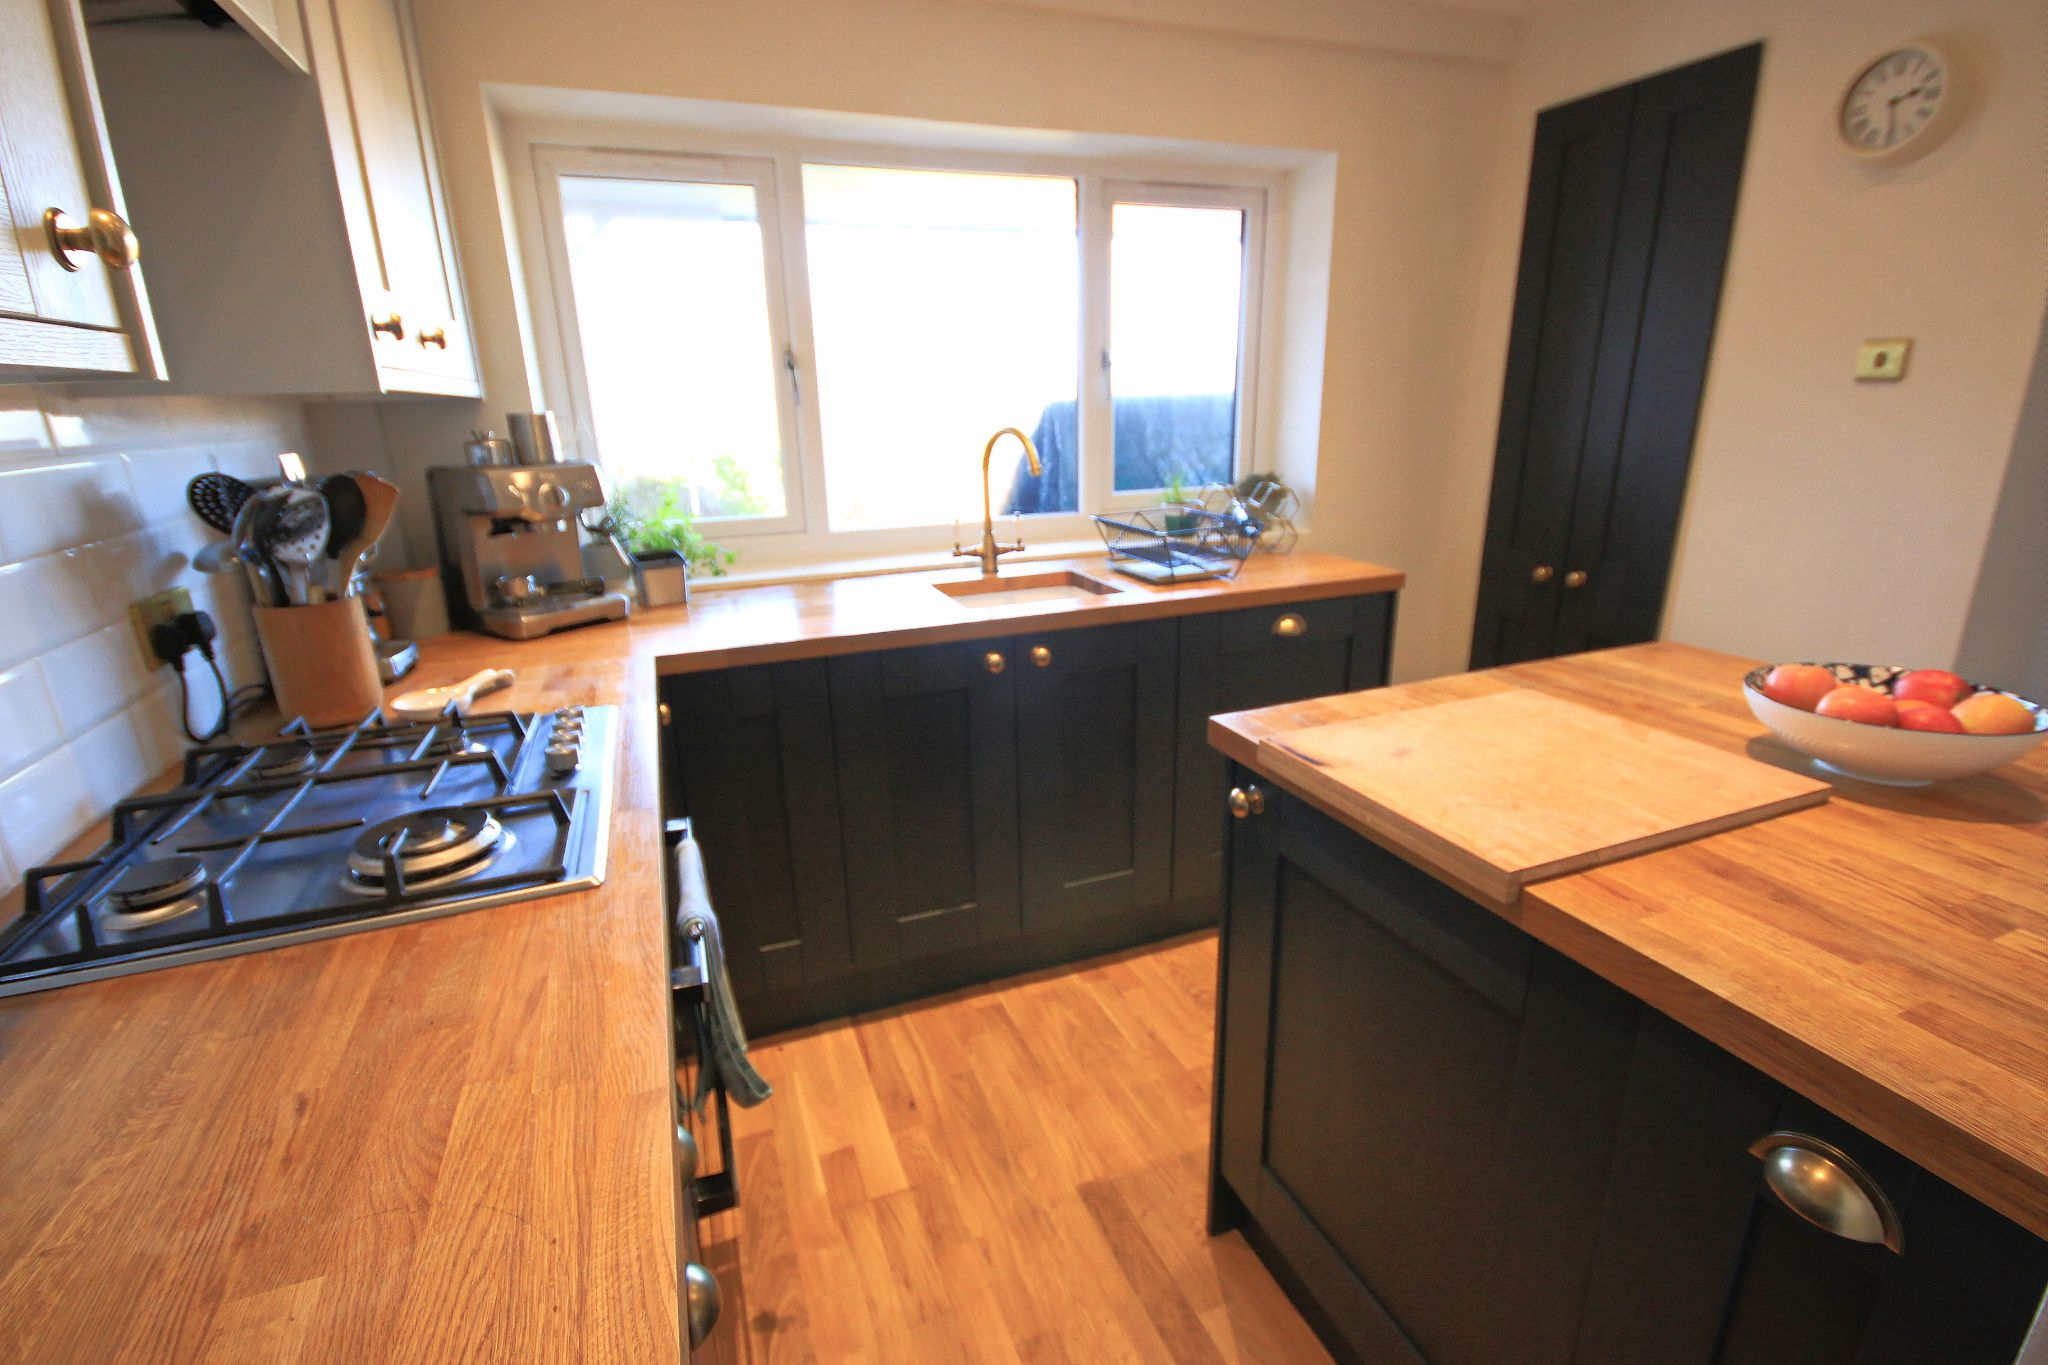 3 Bedroom Semi-detached House For Sale - Photograph 9